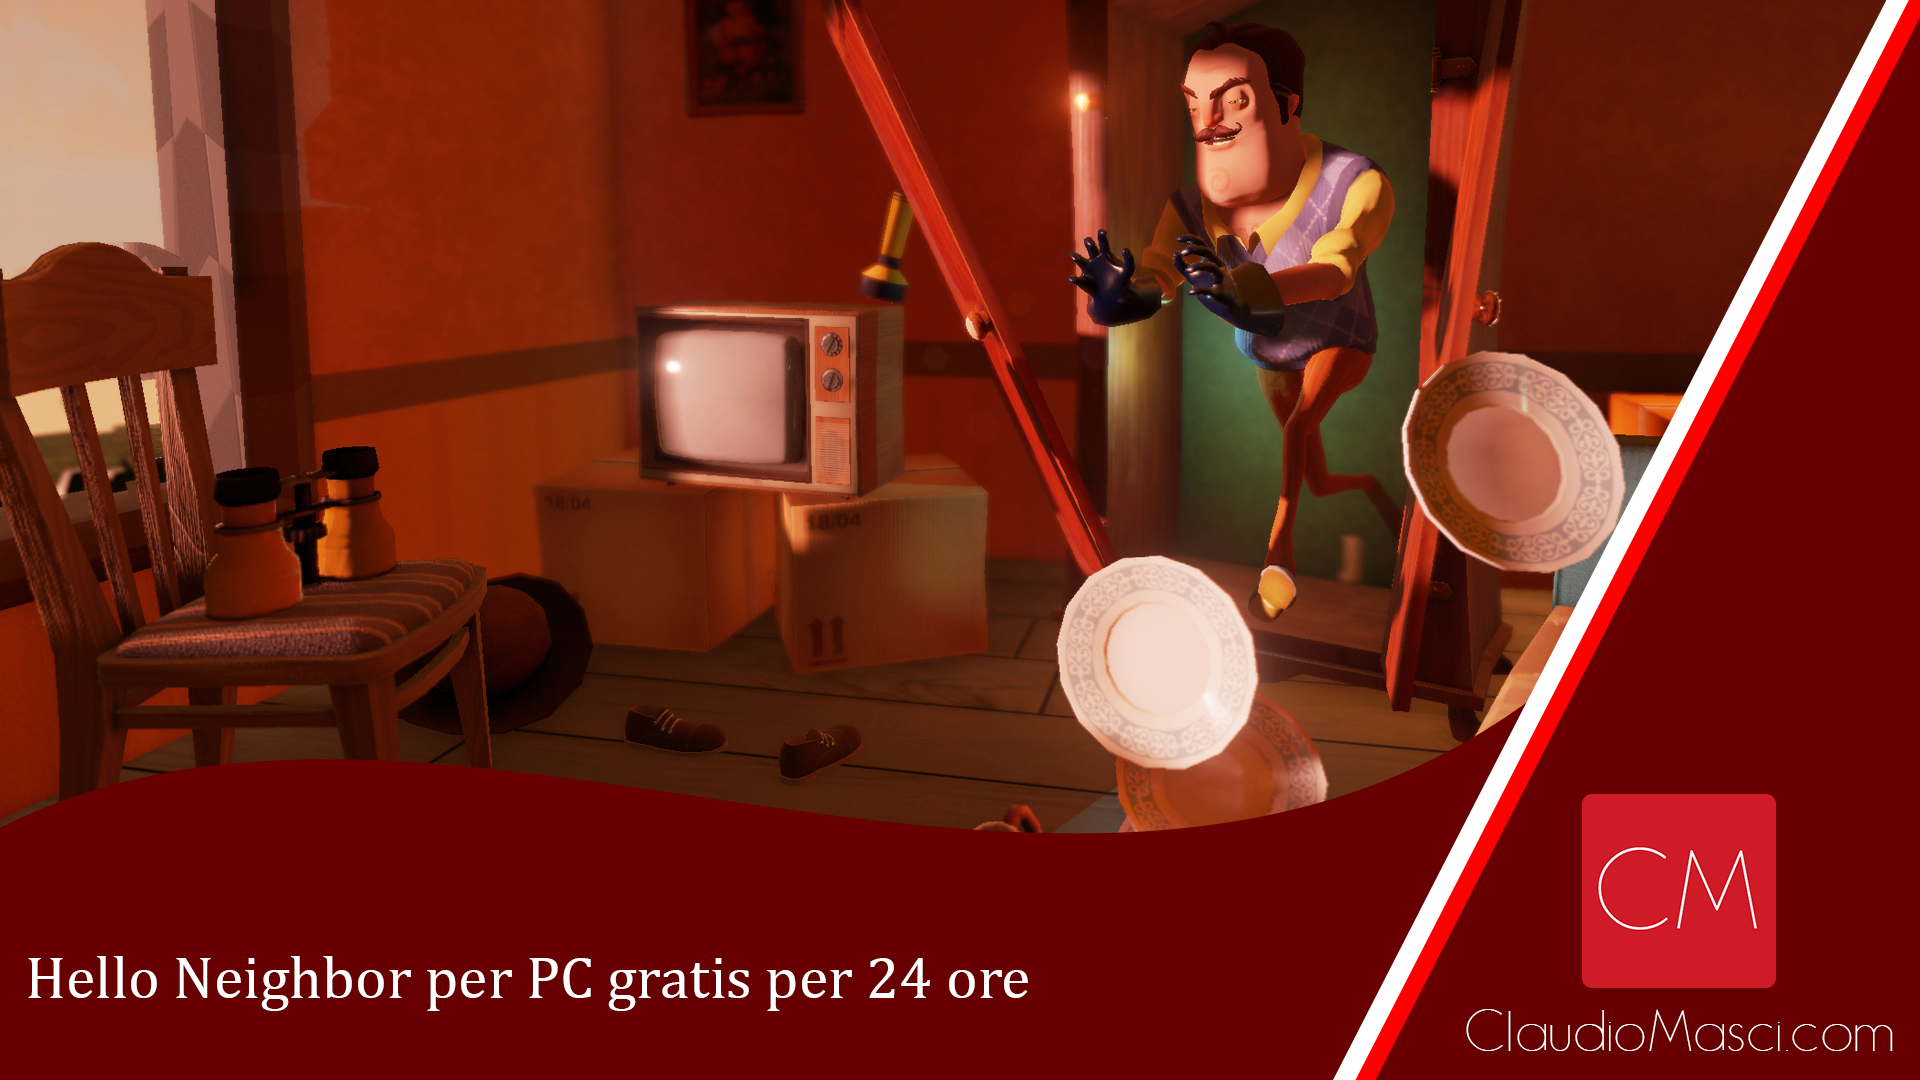 Hello Neighbor per PC gratis per 24 ore